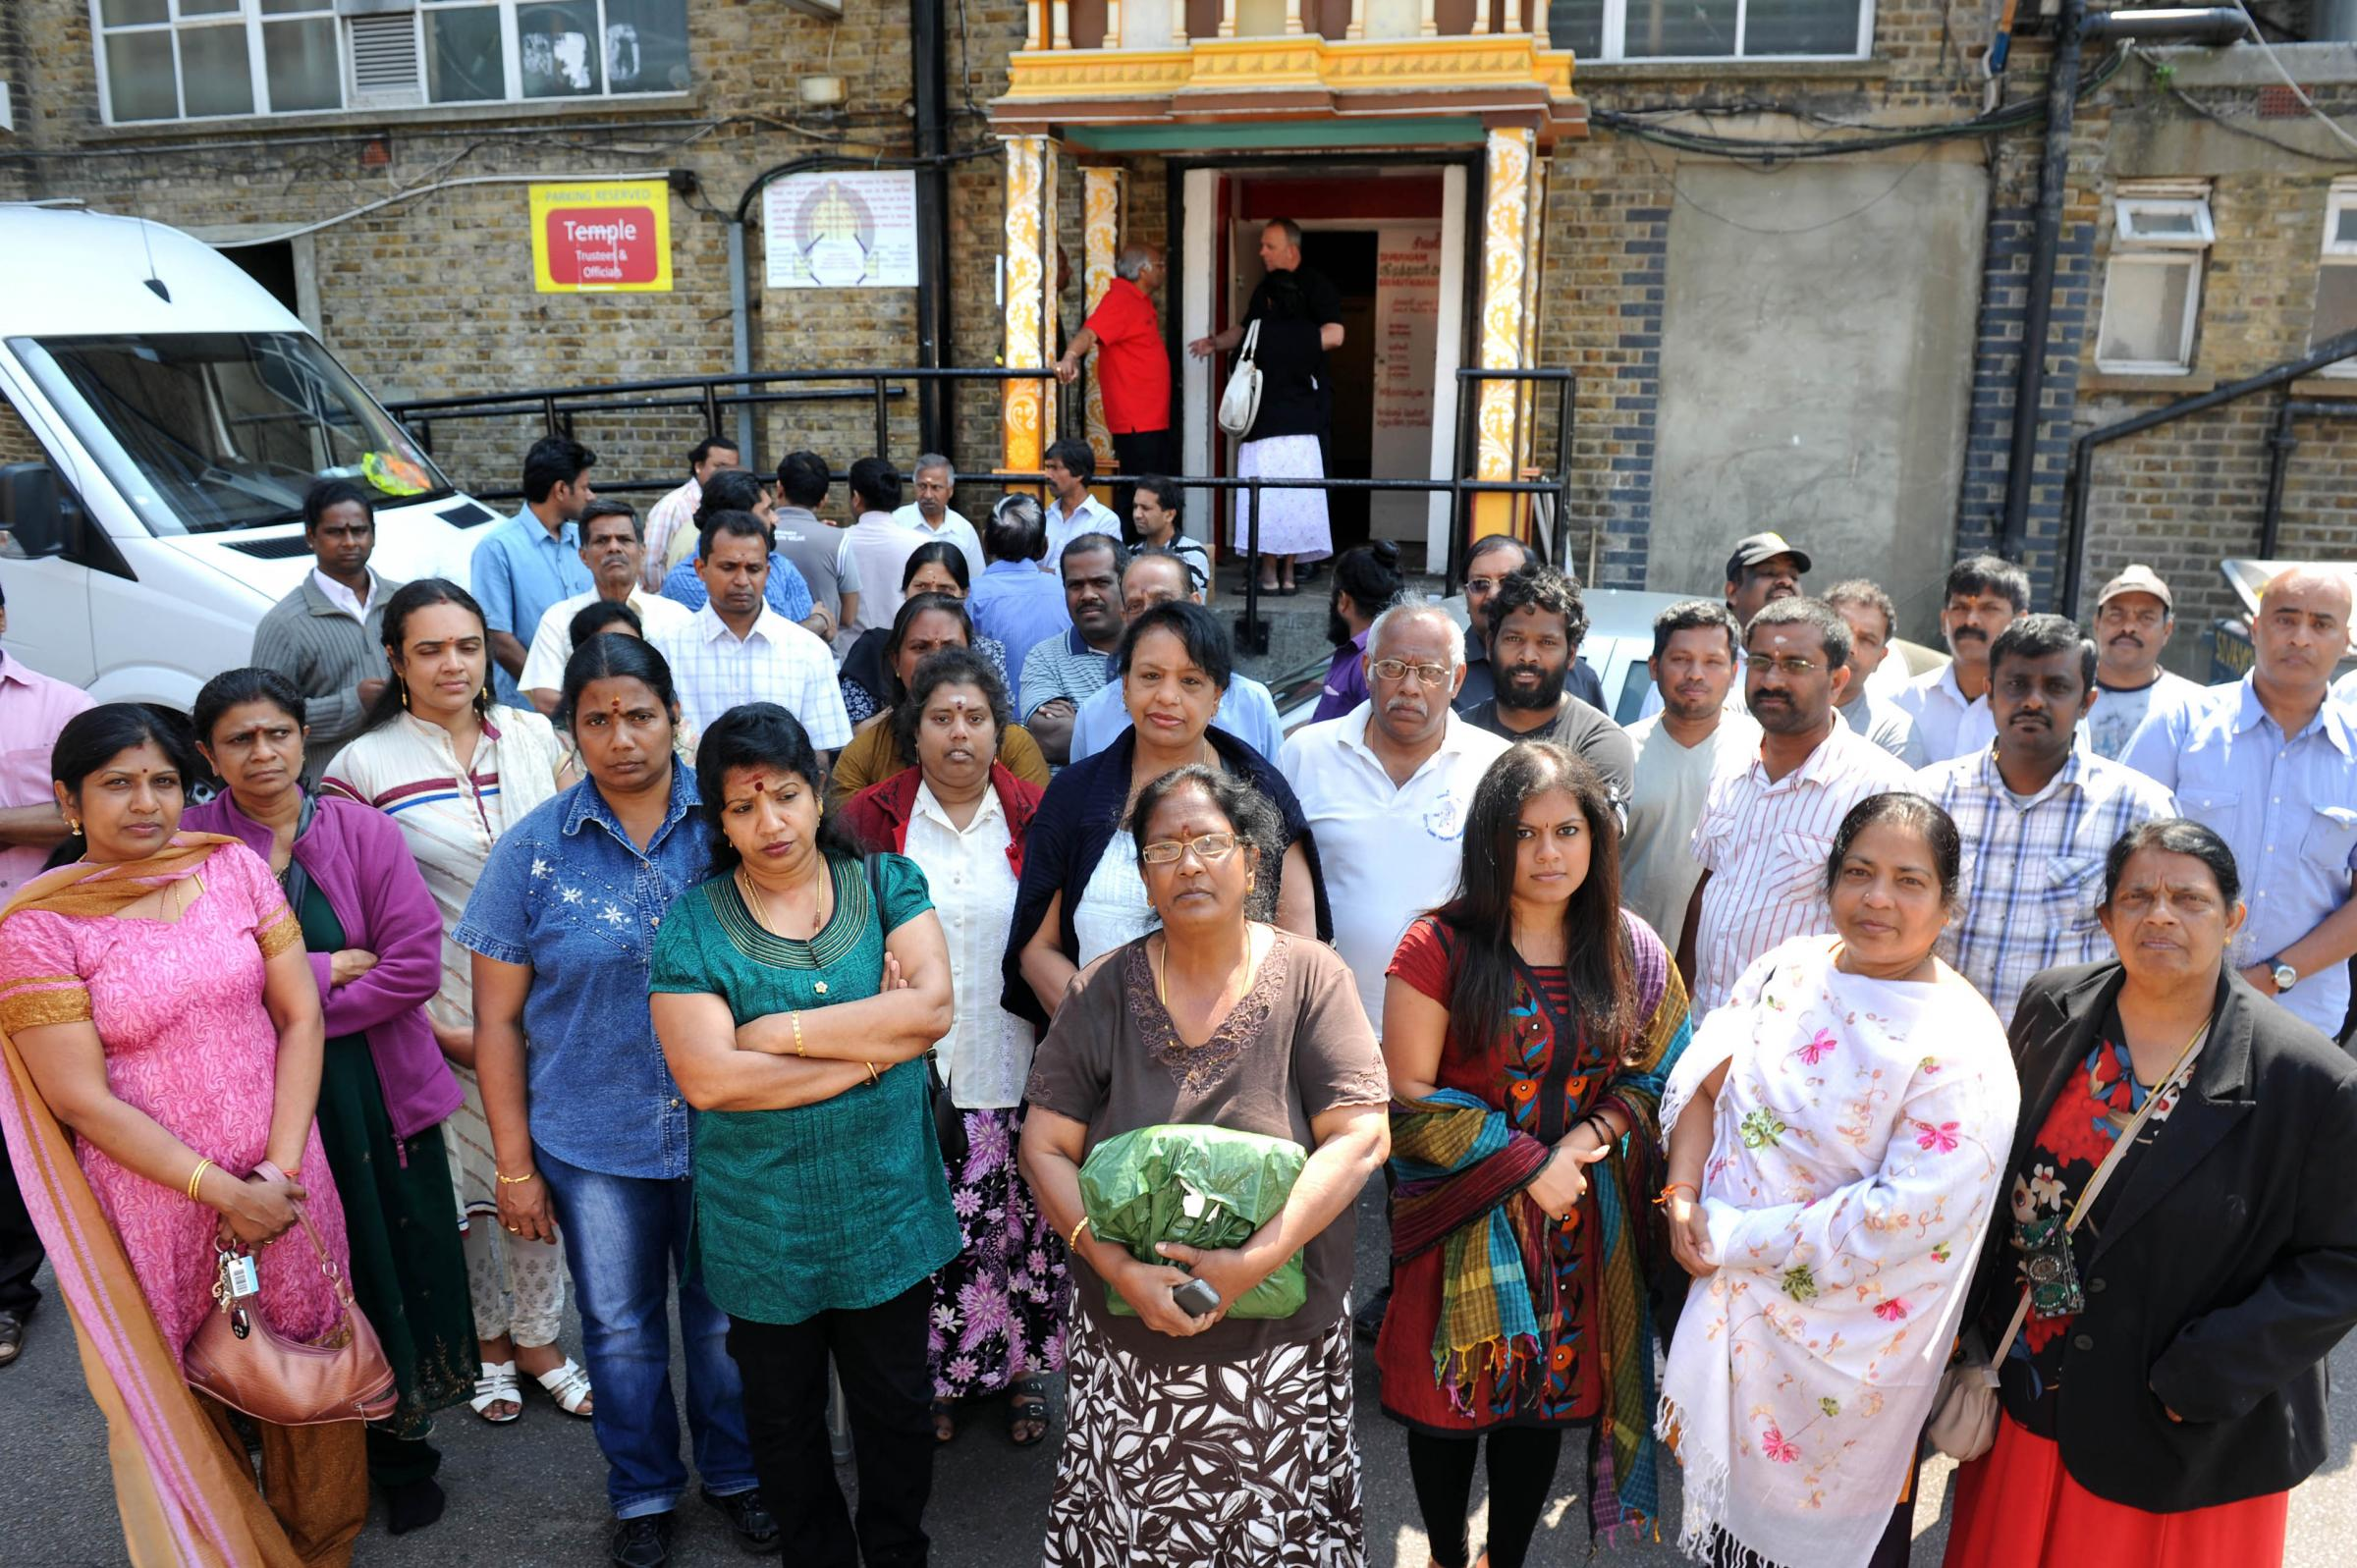 'Hindu cultural centre' in Colliers Wood given green light